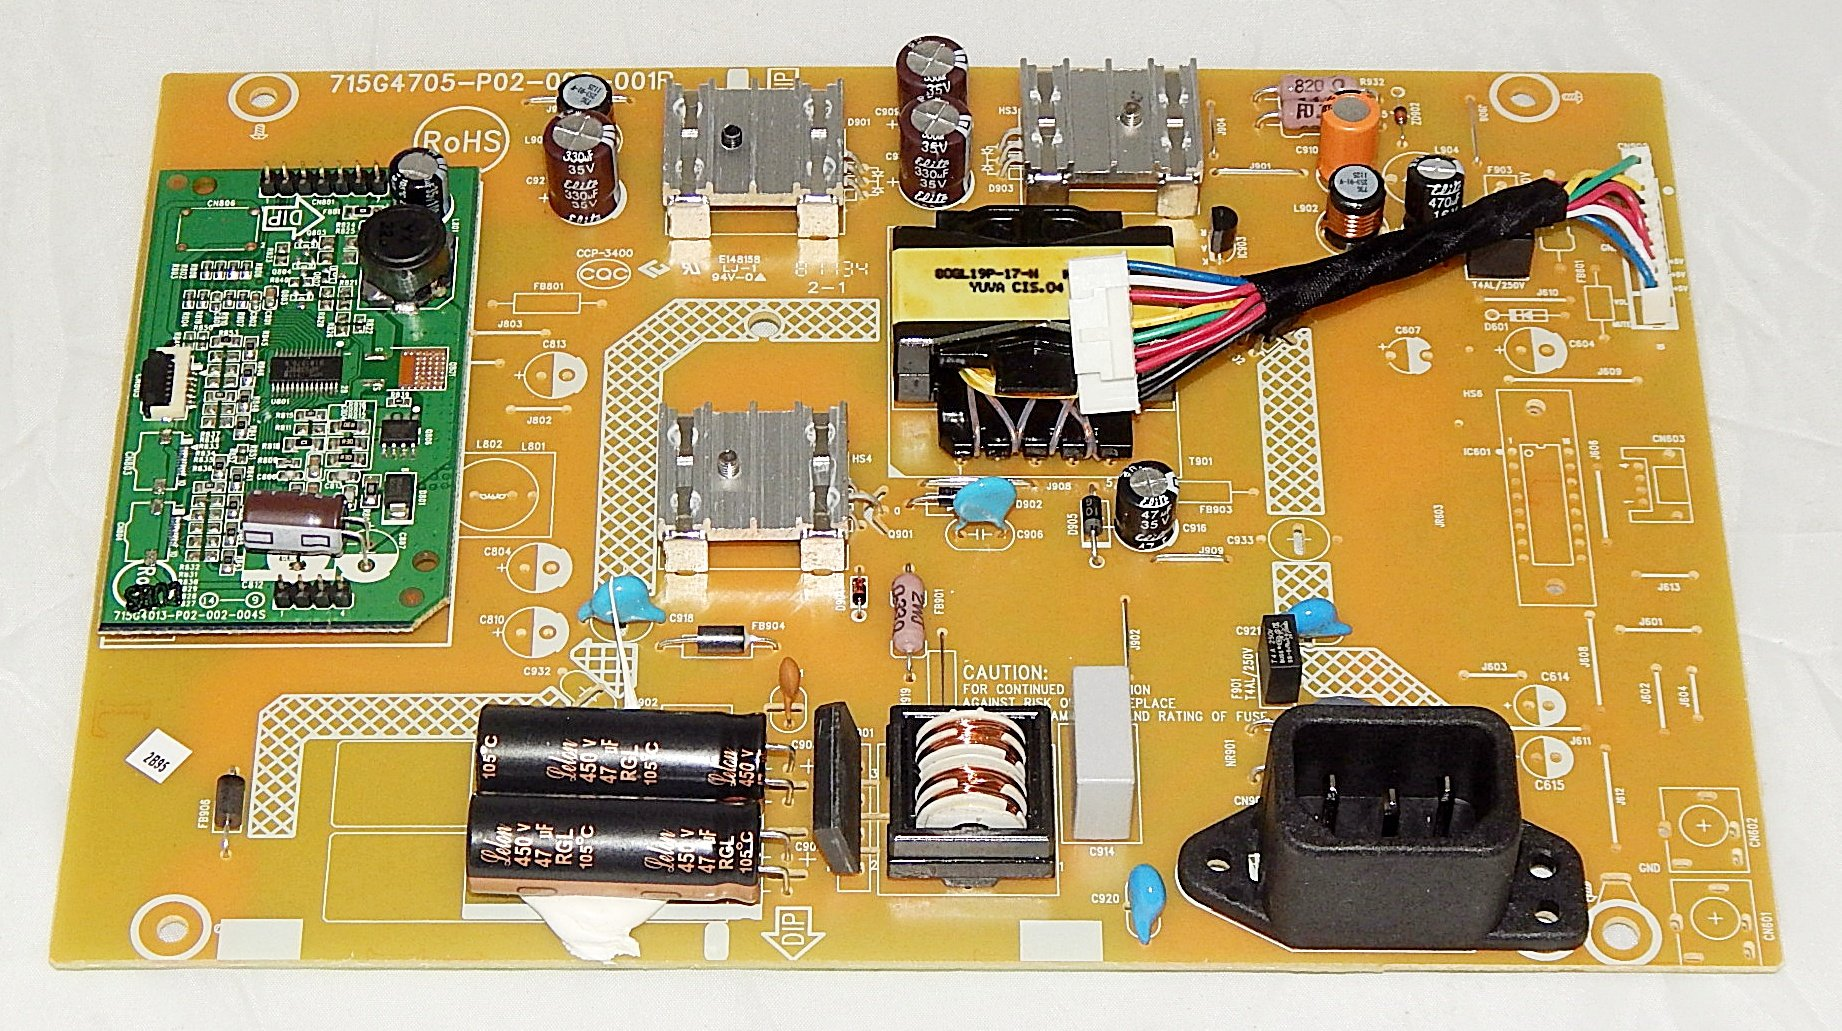 ASUS 04G550434050 (715G4705-P02-000-001R) VS228H VS228H-P Monitor PCB Power Board